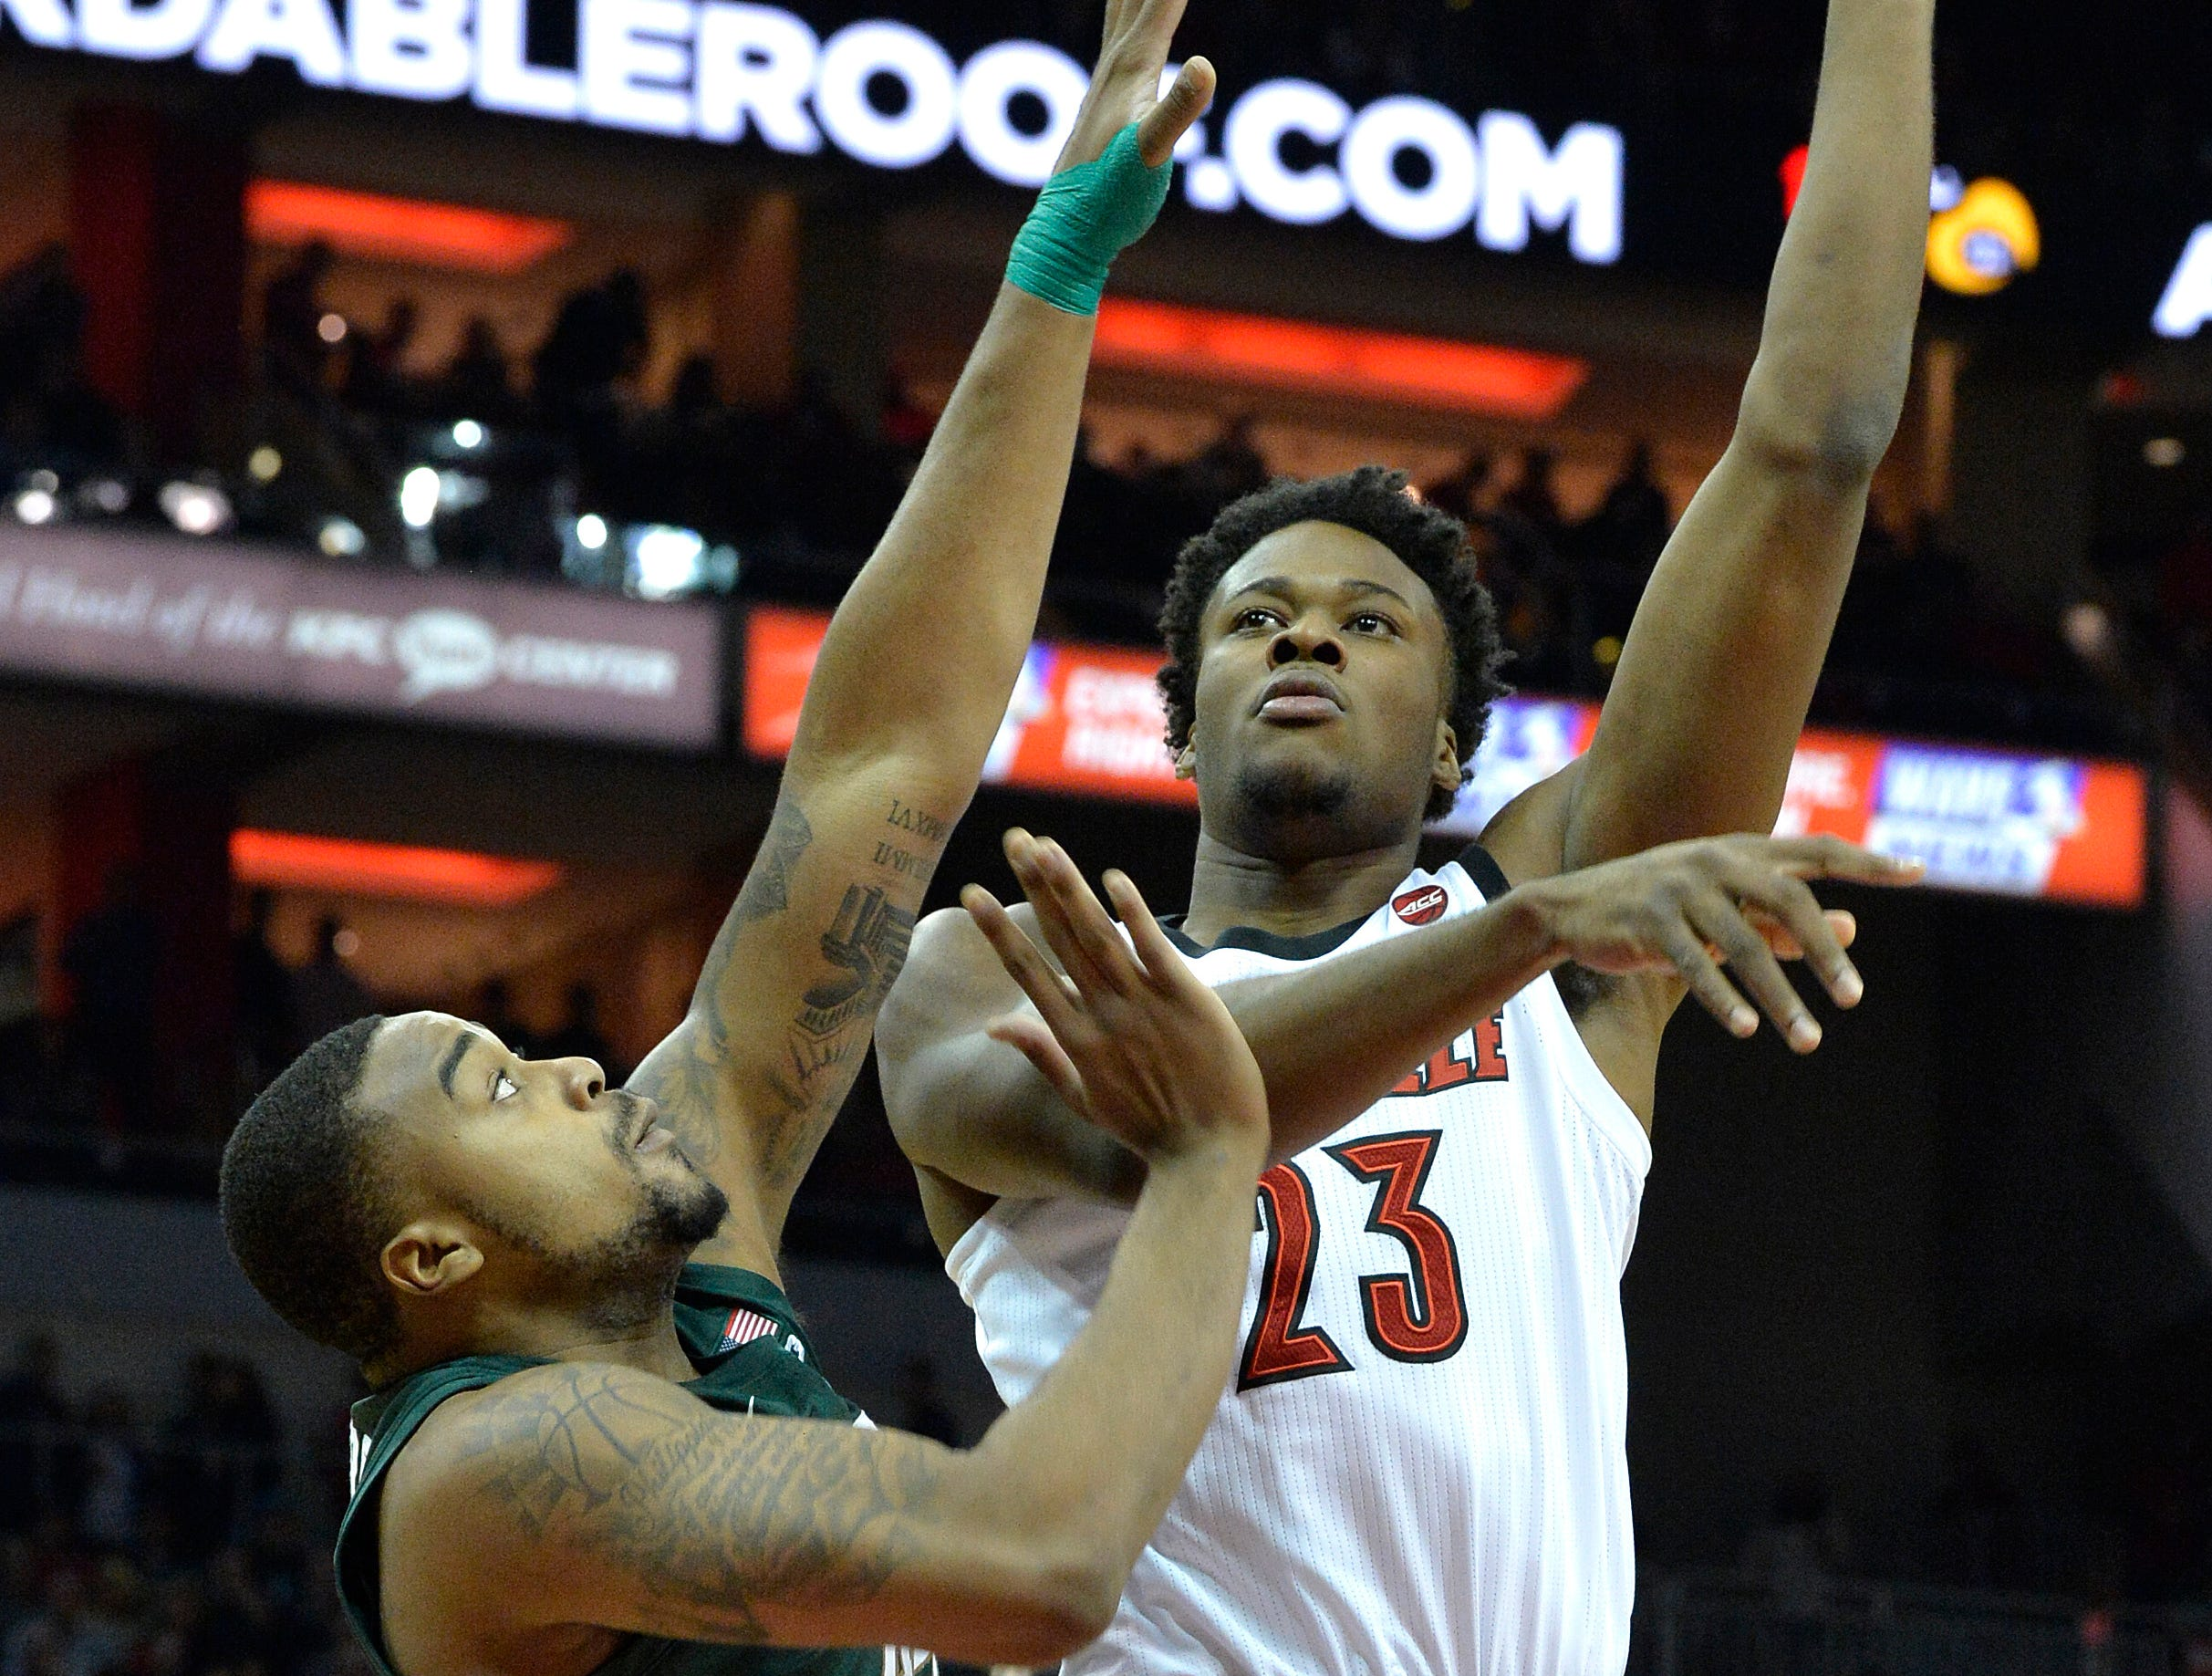 Louisville center Steven Enoch (23) shoots over the defense of Michigan State forward Nick Ward (44) during overtime.